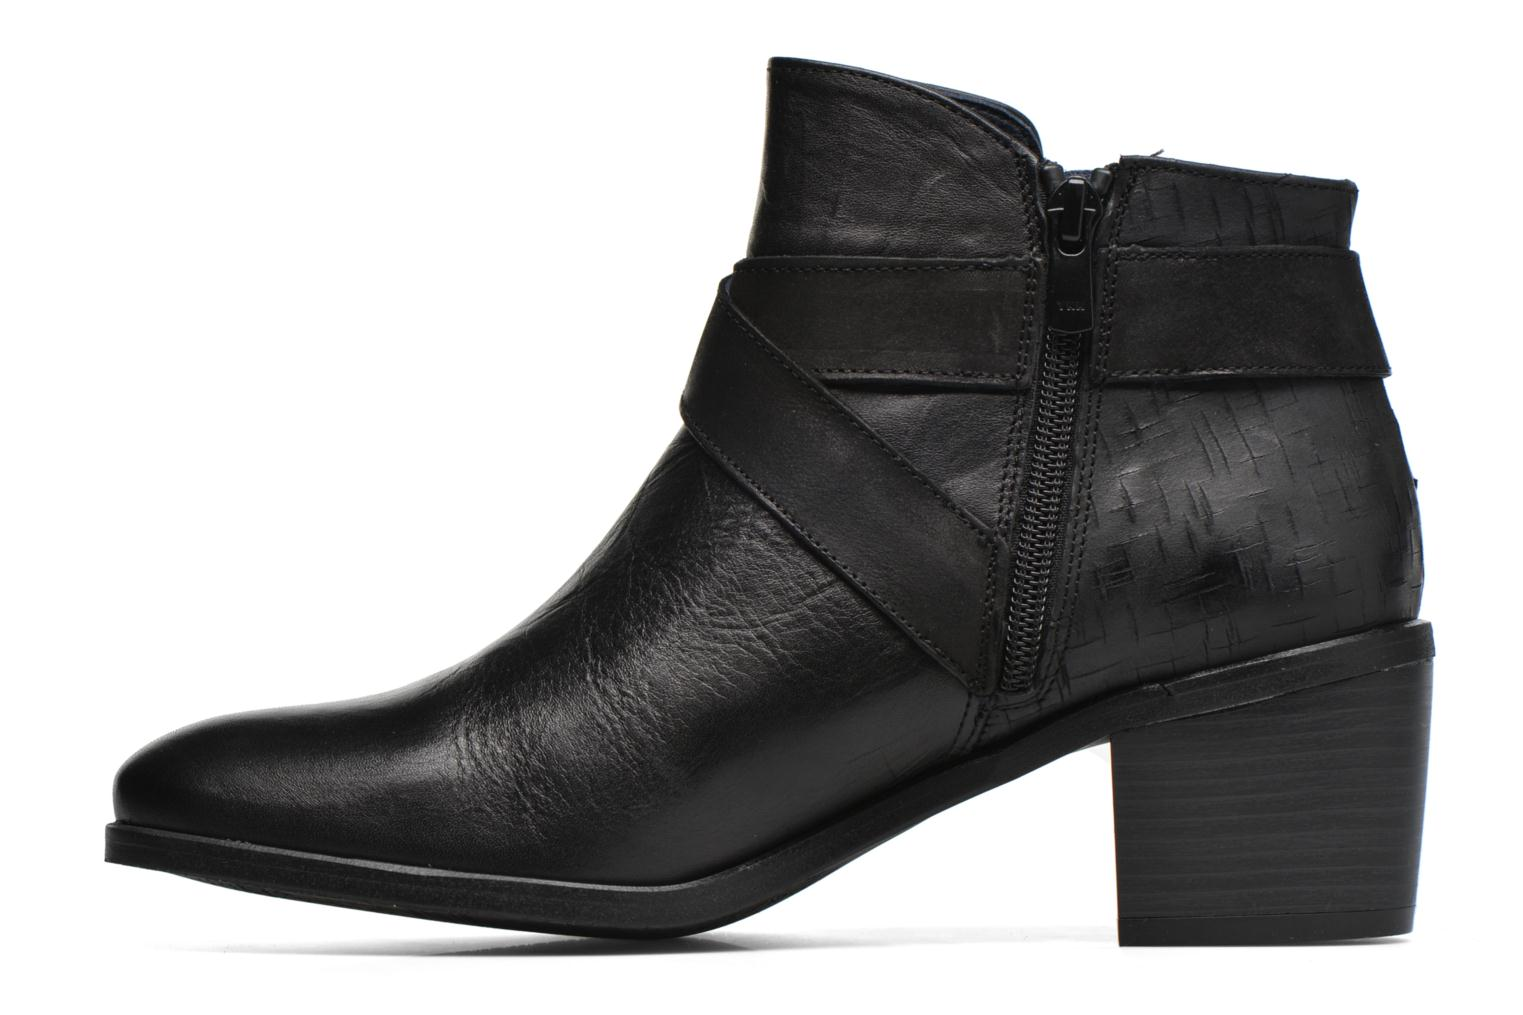 Bottines et boots Dorking Cora 6940 Noir vue face